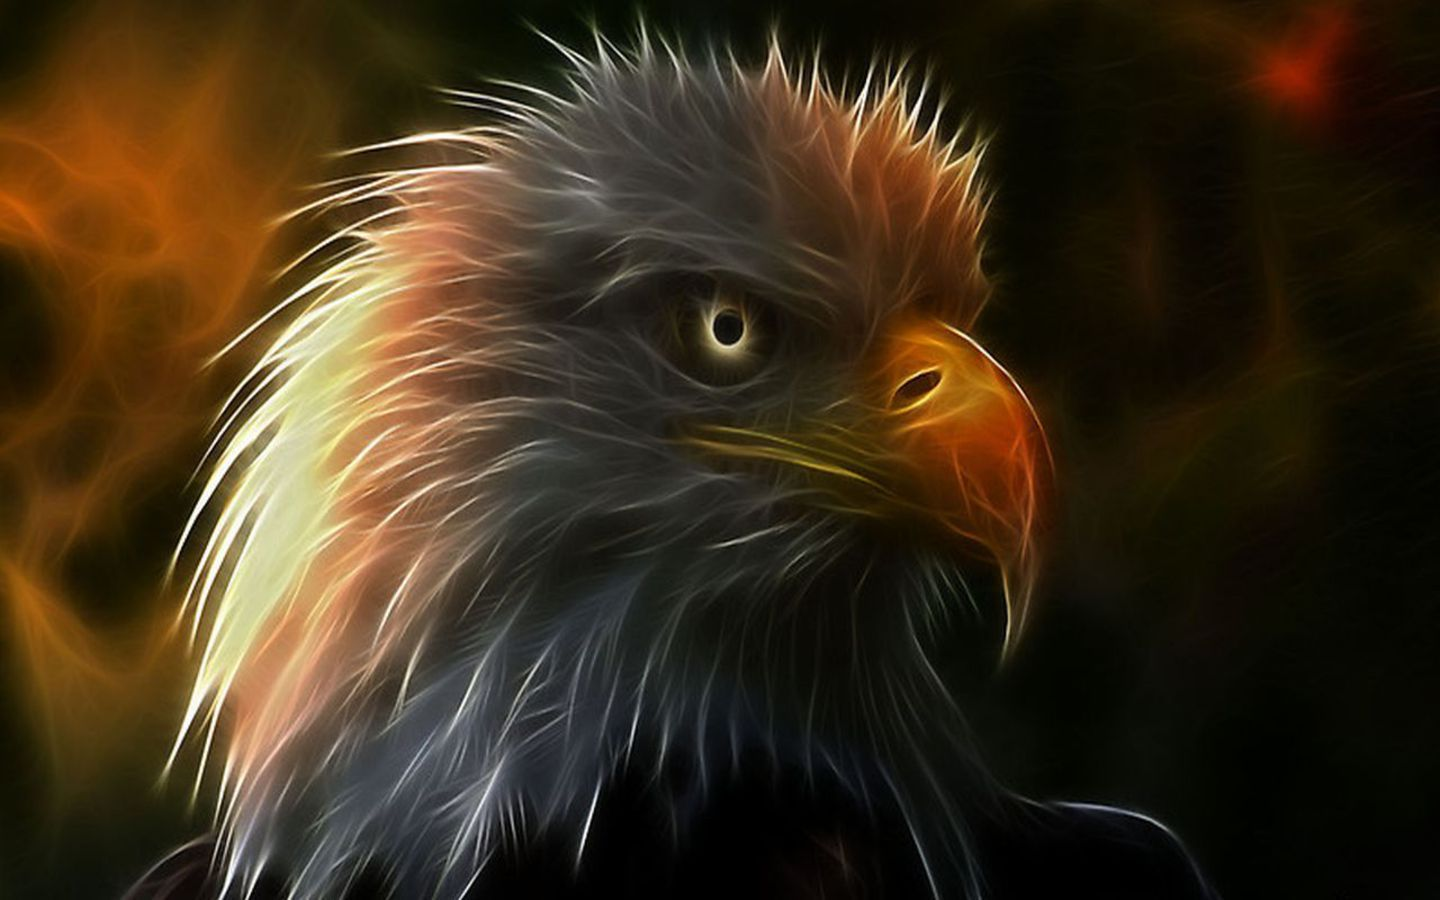 Eagles Eyes In Oictures Fire Eagle Wallpaper Pictures Photos In Best Quality Eagle Wallpaper Animal Wallpaper Eagle Images